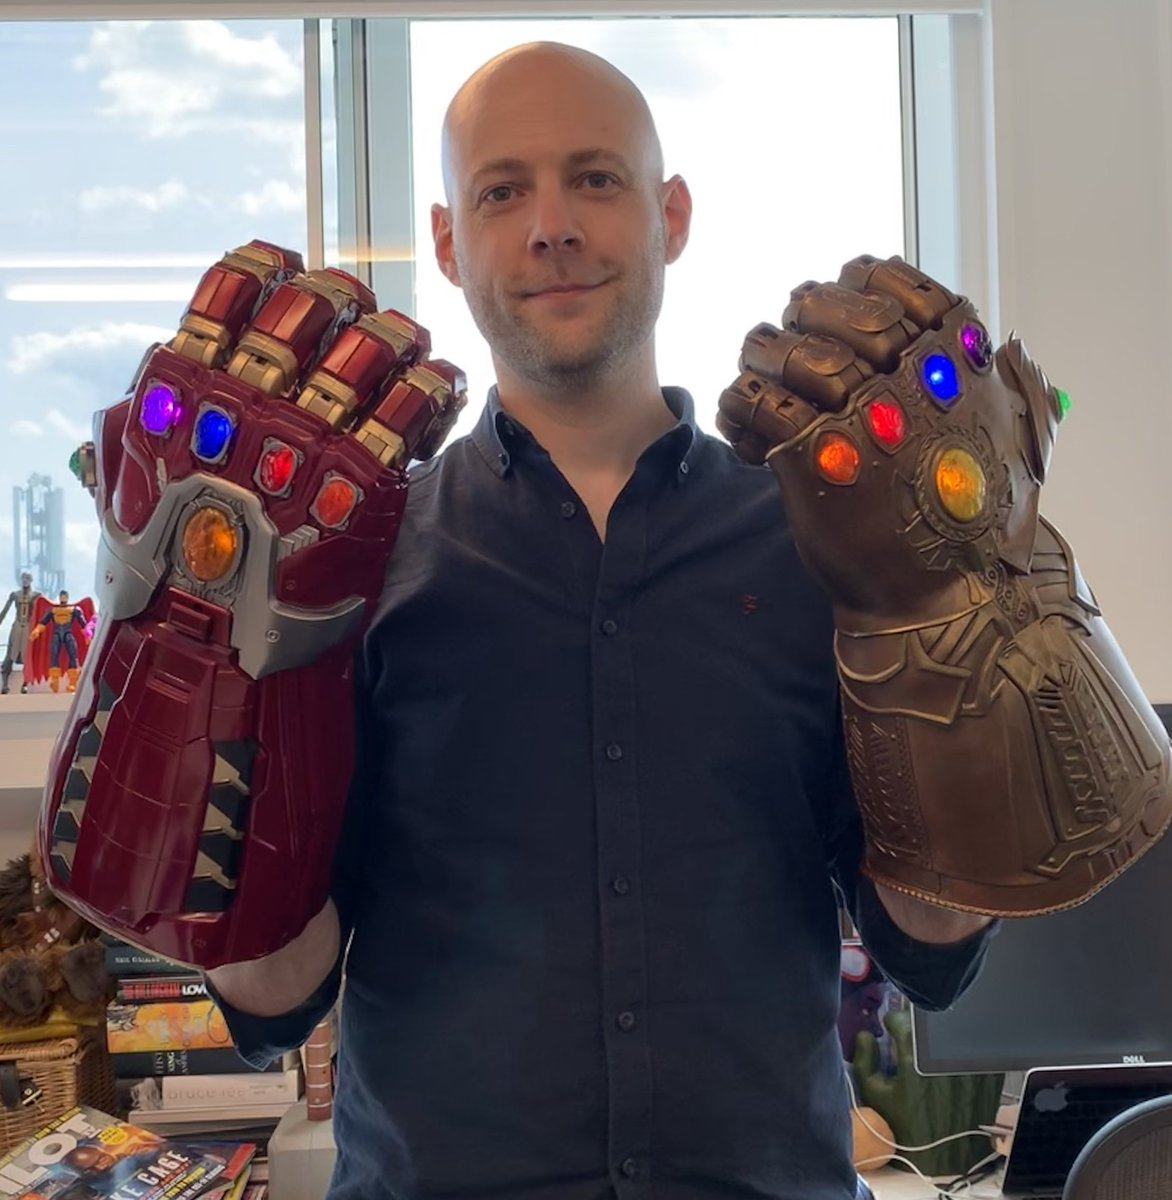 Thanks to @Hasbro for furnishing @jamescdyer with a *second* Infinity Gauntlet, allowing him to finally realise his plans for galactic domination.